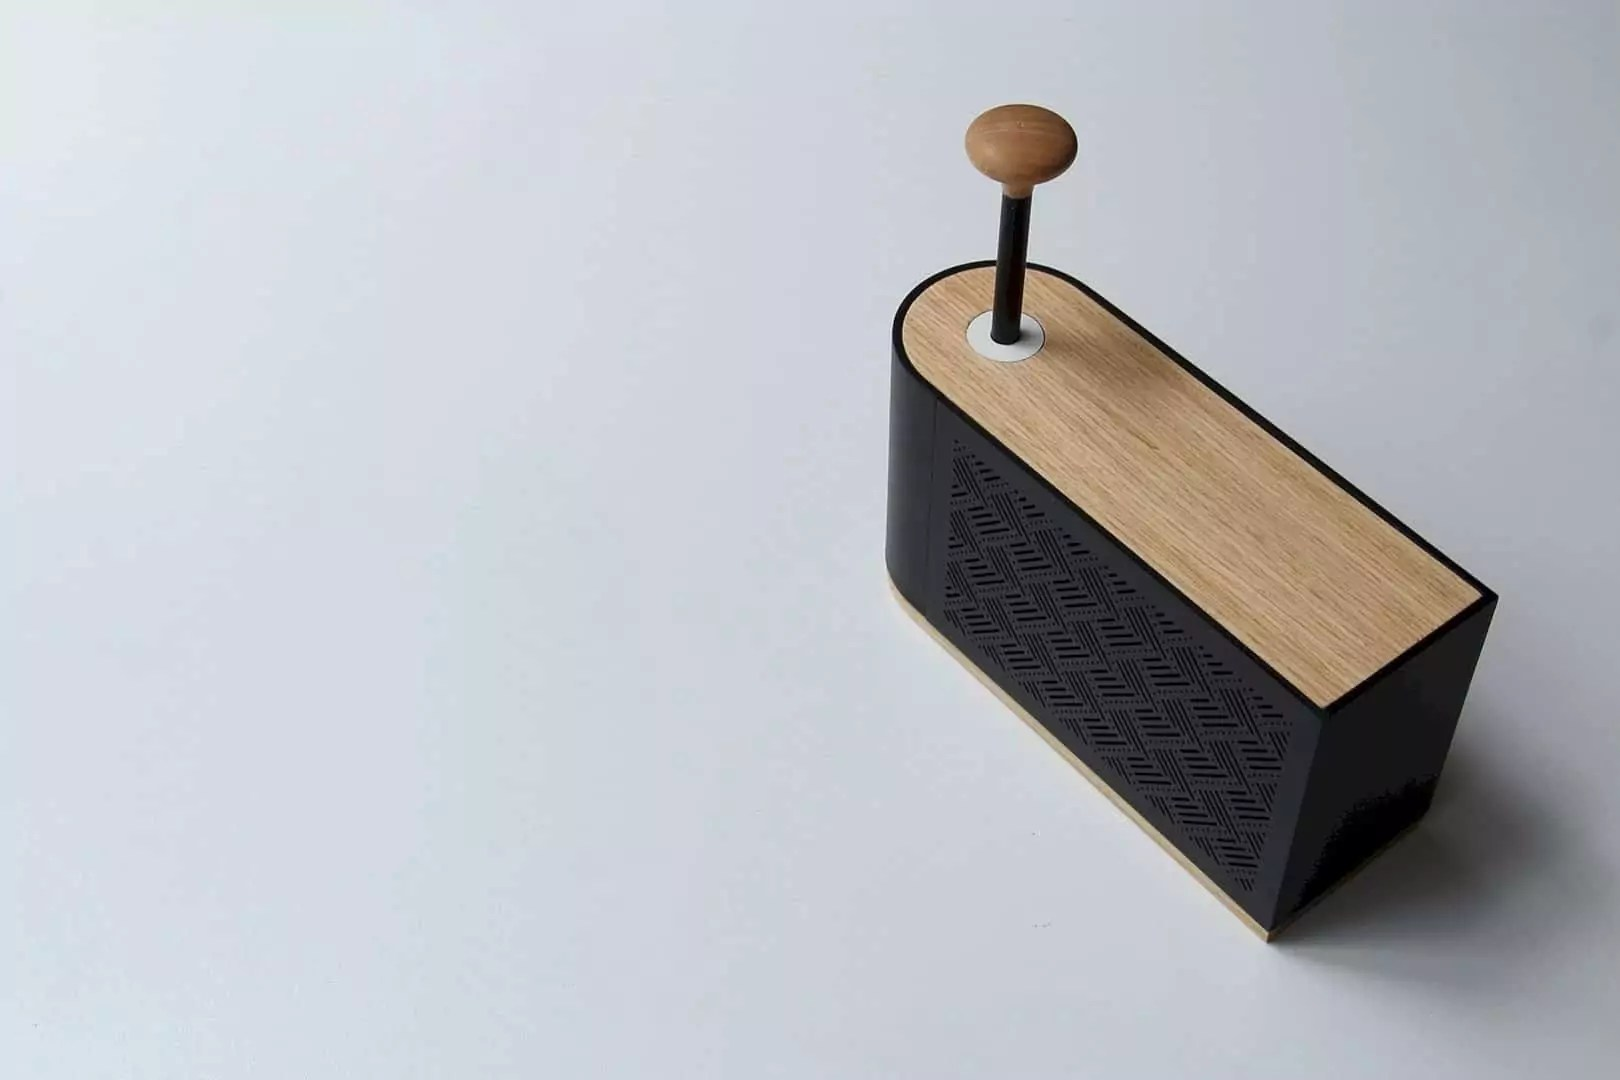 Hilo Speaker Ignite The Nostalgic by Means of a Knob - Yes, You Miss This Sensation!